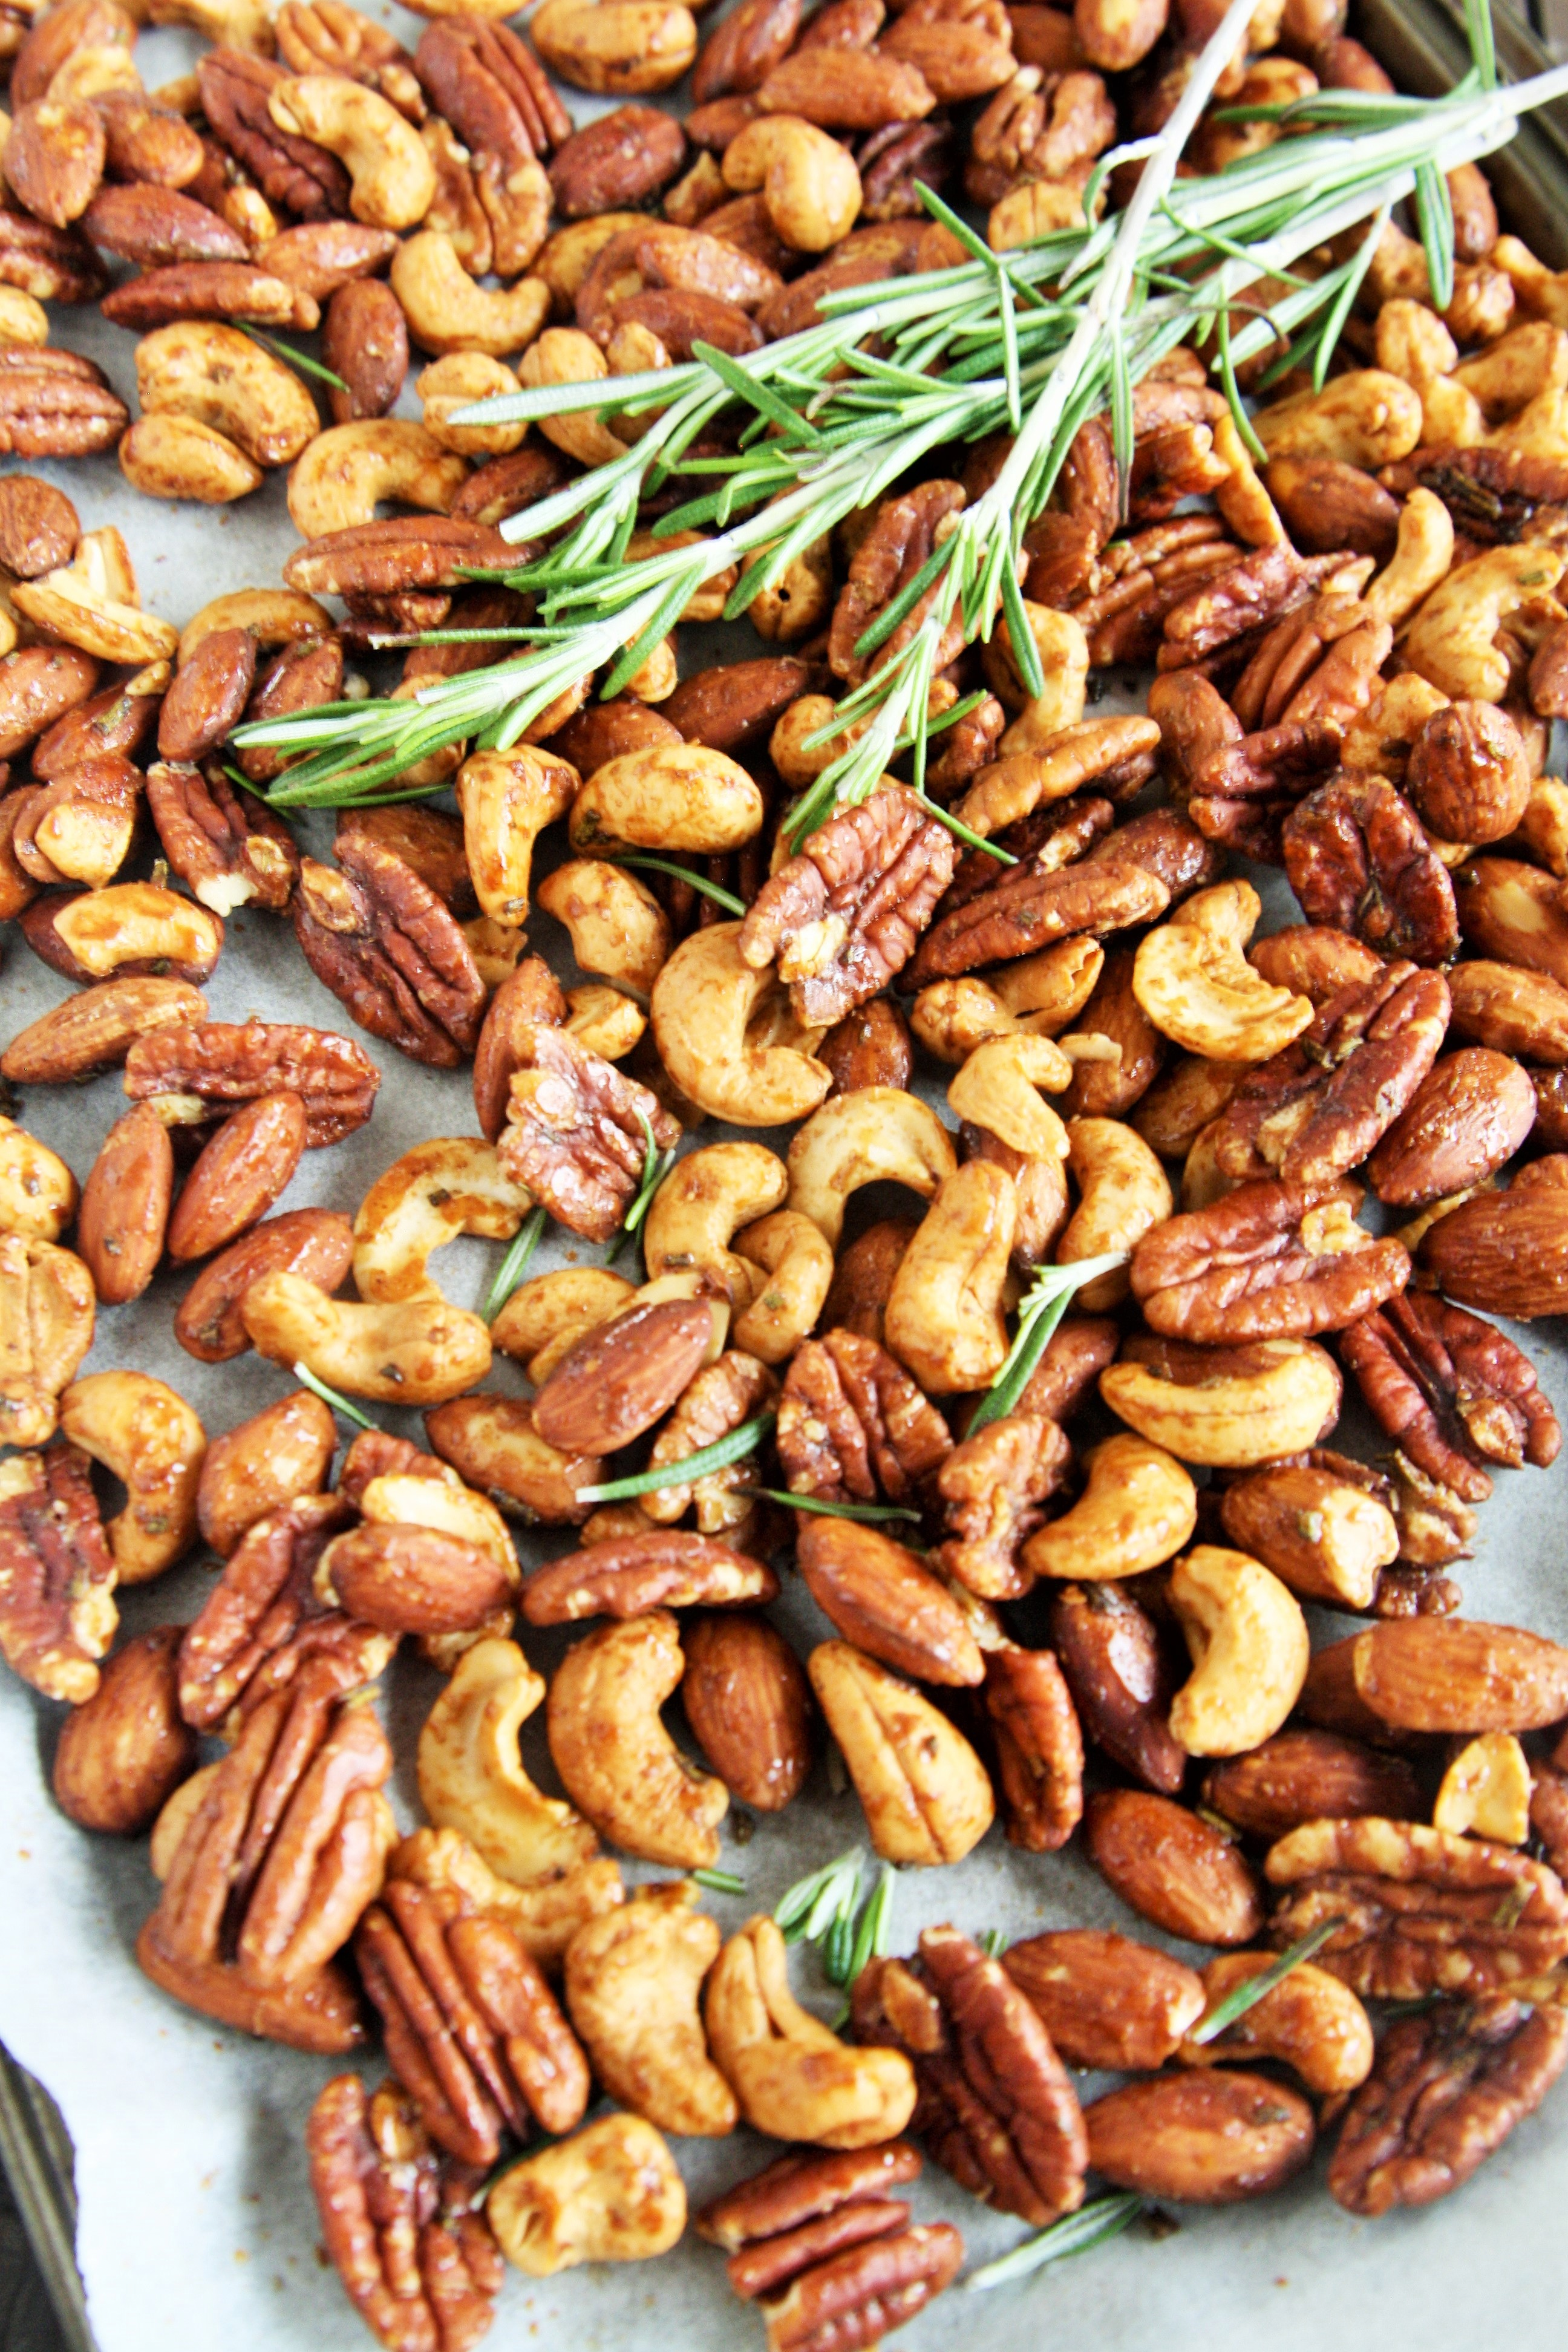 Communication on this topic: Rosemary and Olive Oil Roasted Cashews Recipe, rosemary-and-olive-oil-roasted-cashews-recipe/